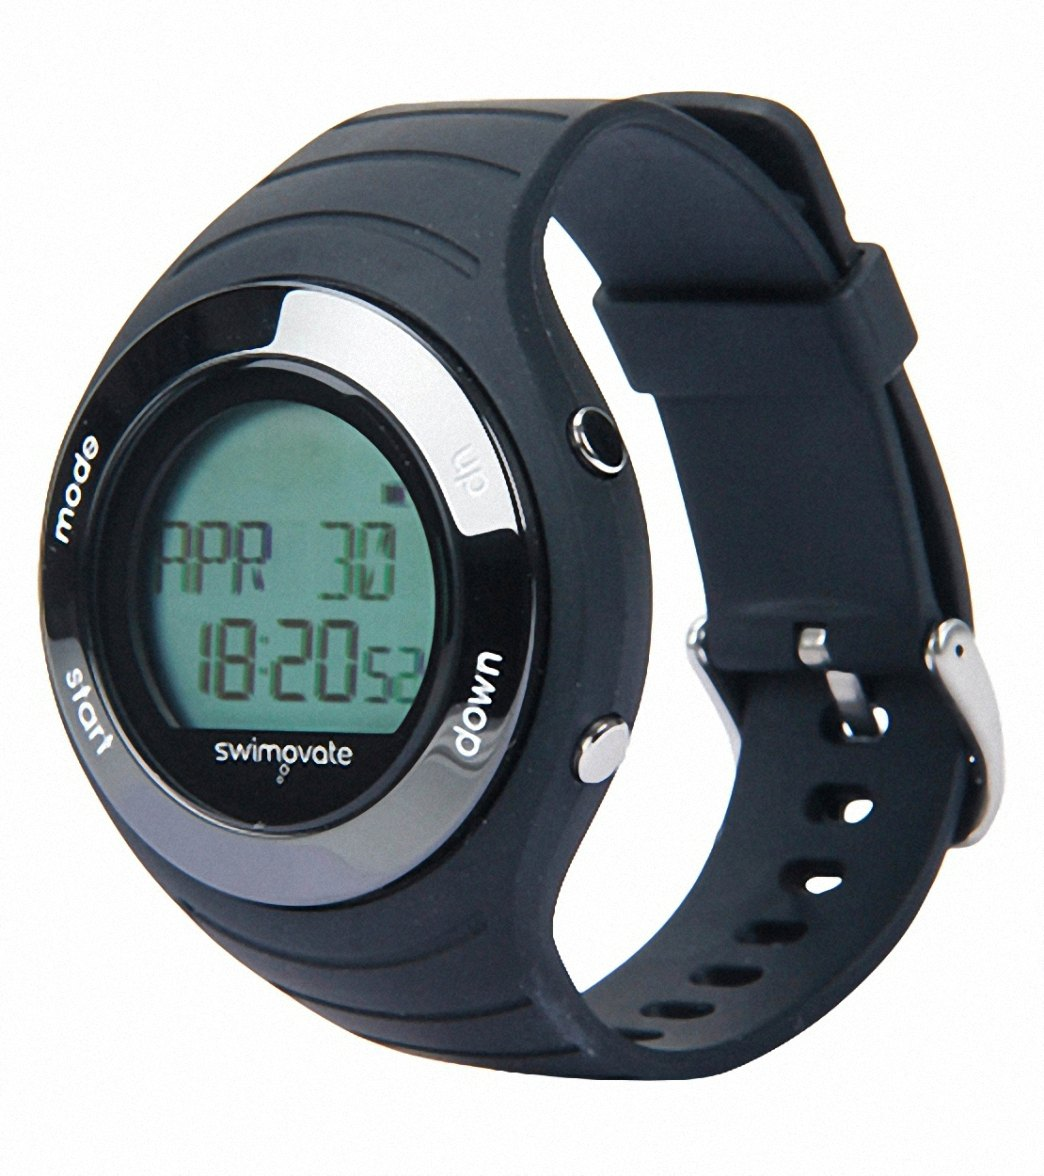 Swimovate Poolmate HR Swim Watch at SwimOutlet.com - Free Shipping b03595d43